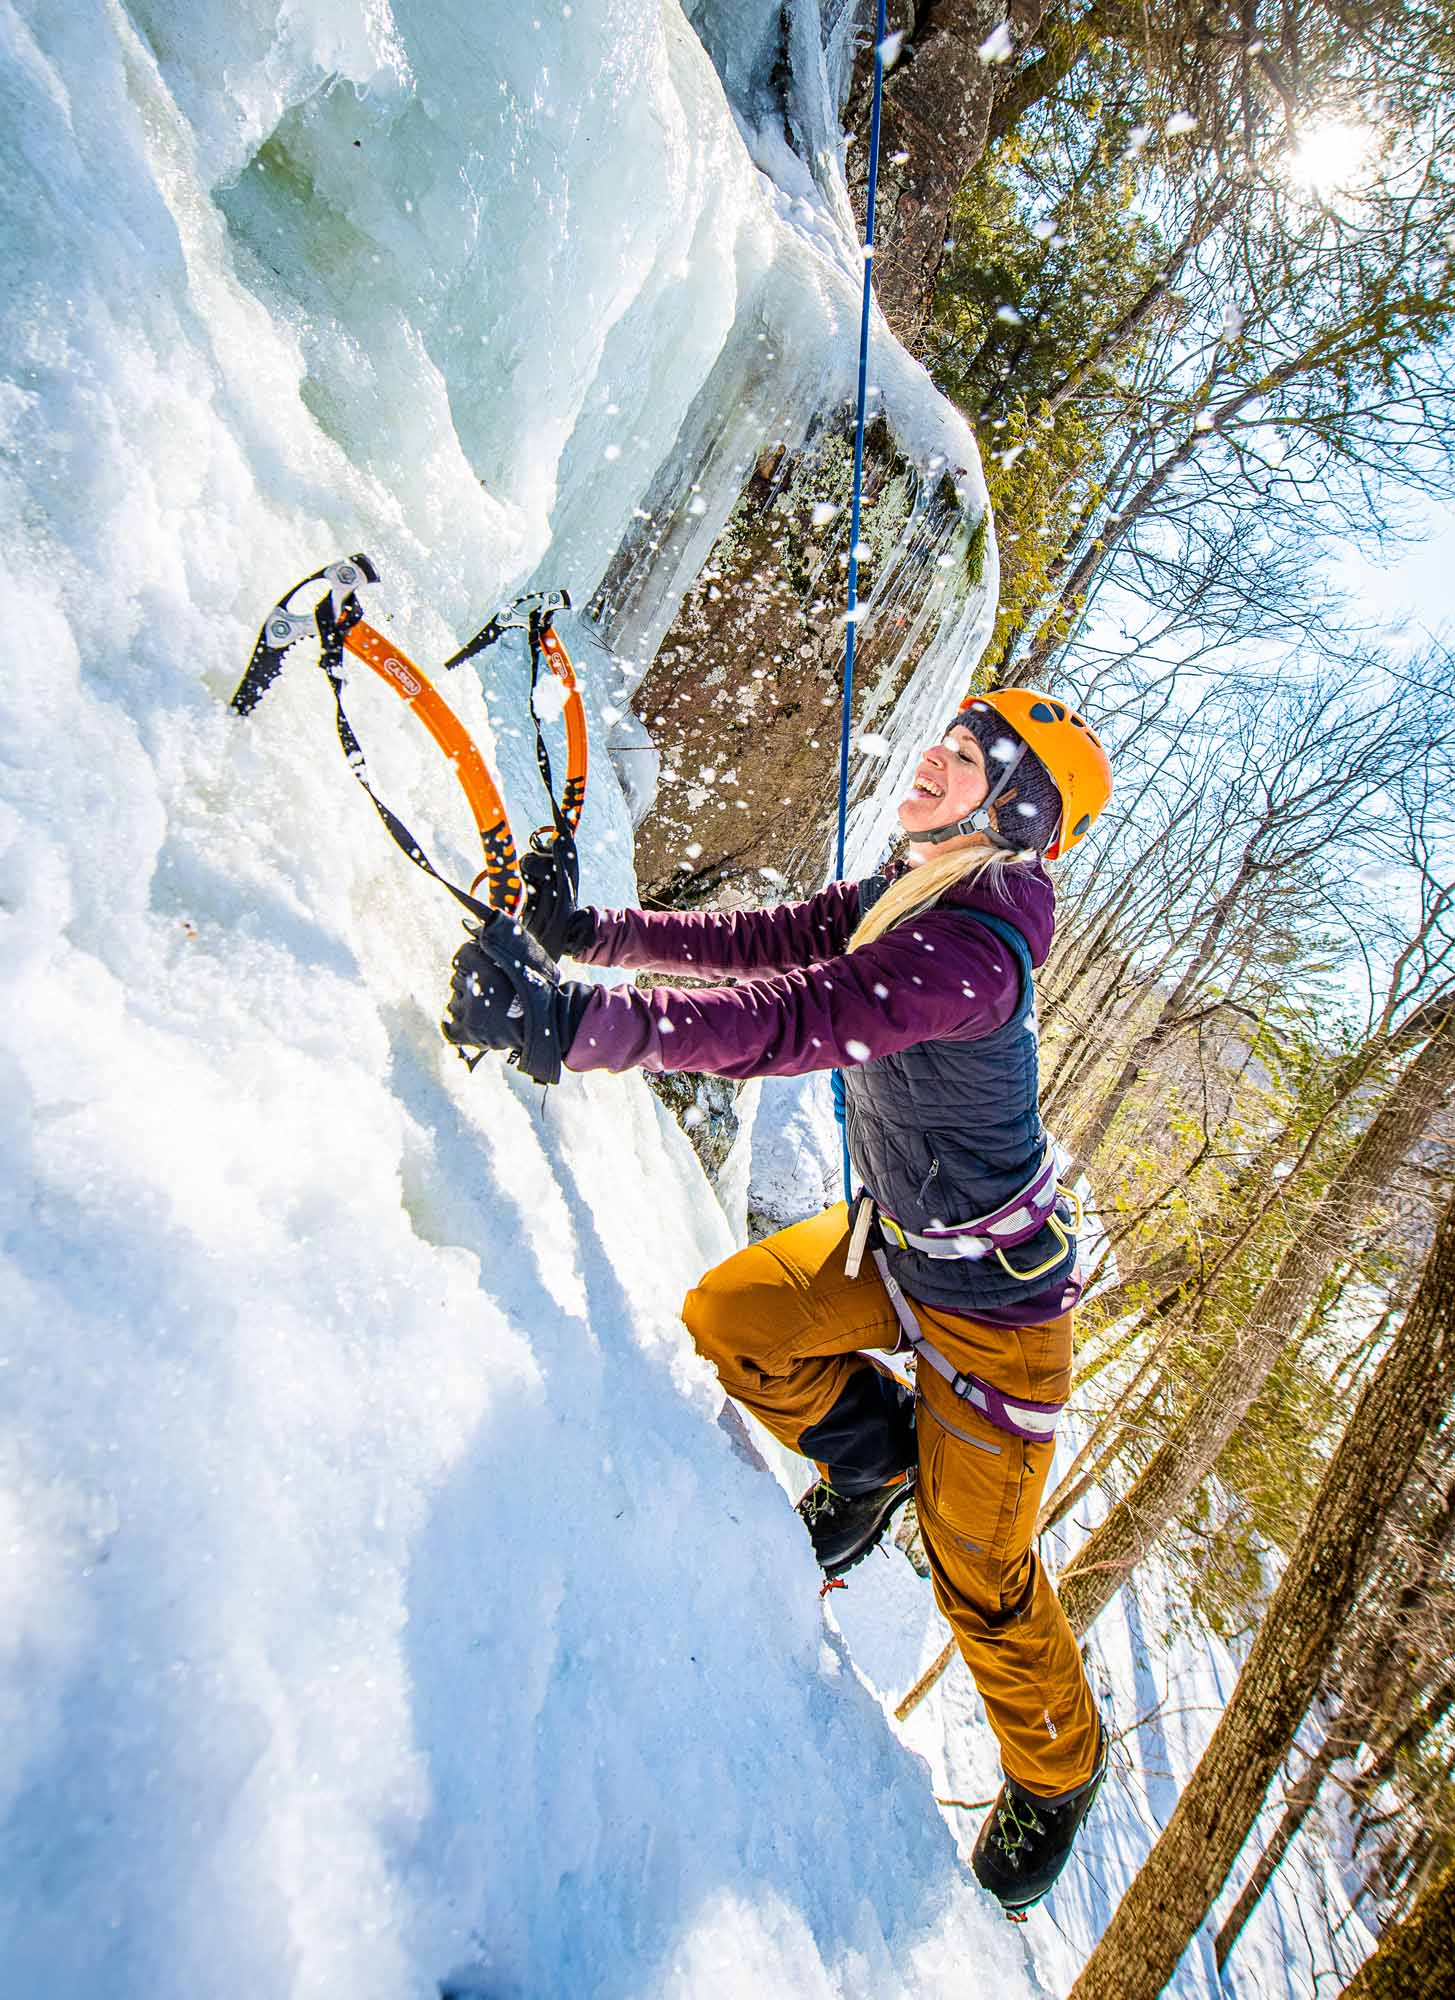 Ice-Flow-Making-Connections-on-Frozen-Waterfalls-climber-Bre-Robertson-photo-by-Kristin-Schnelten